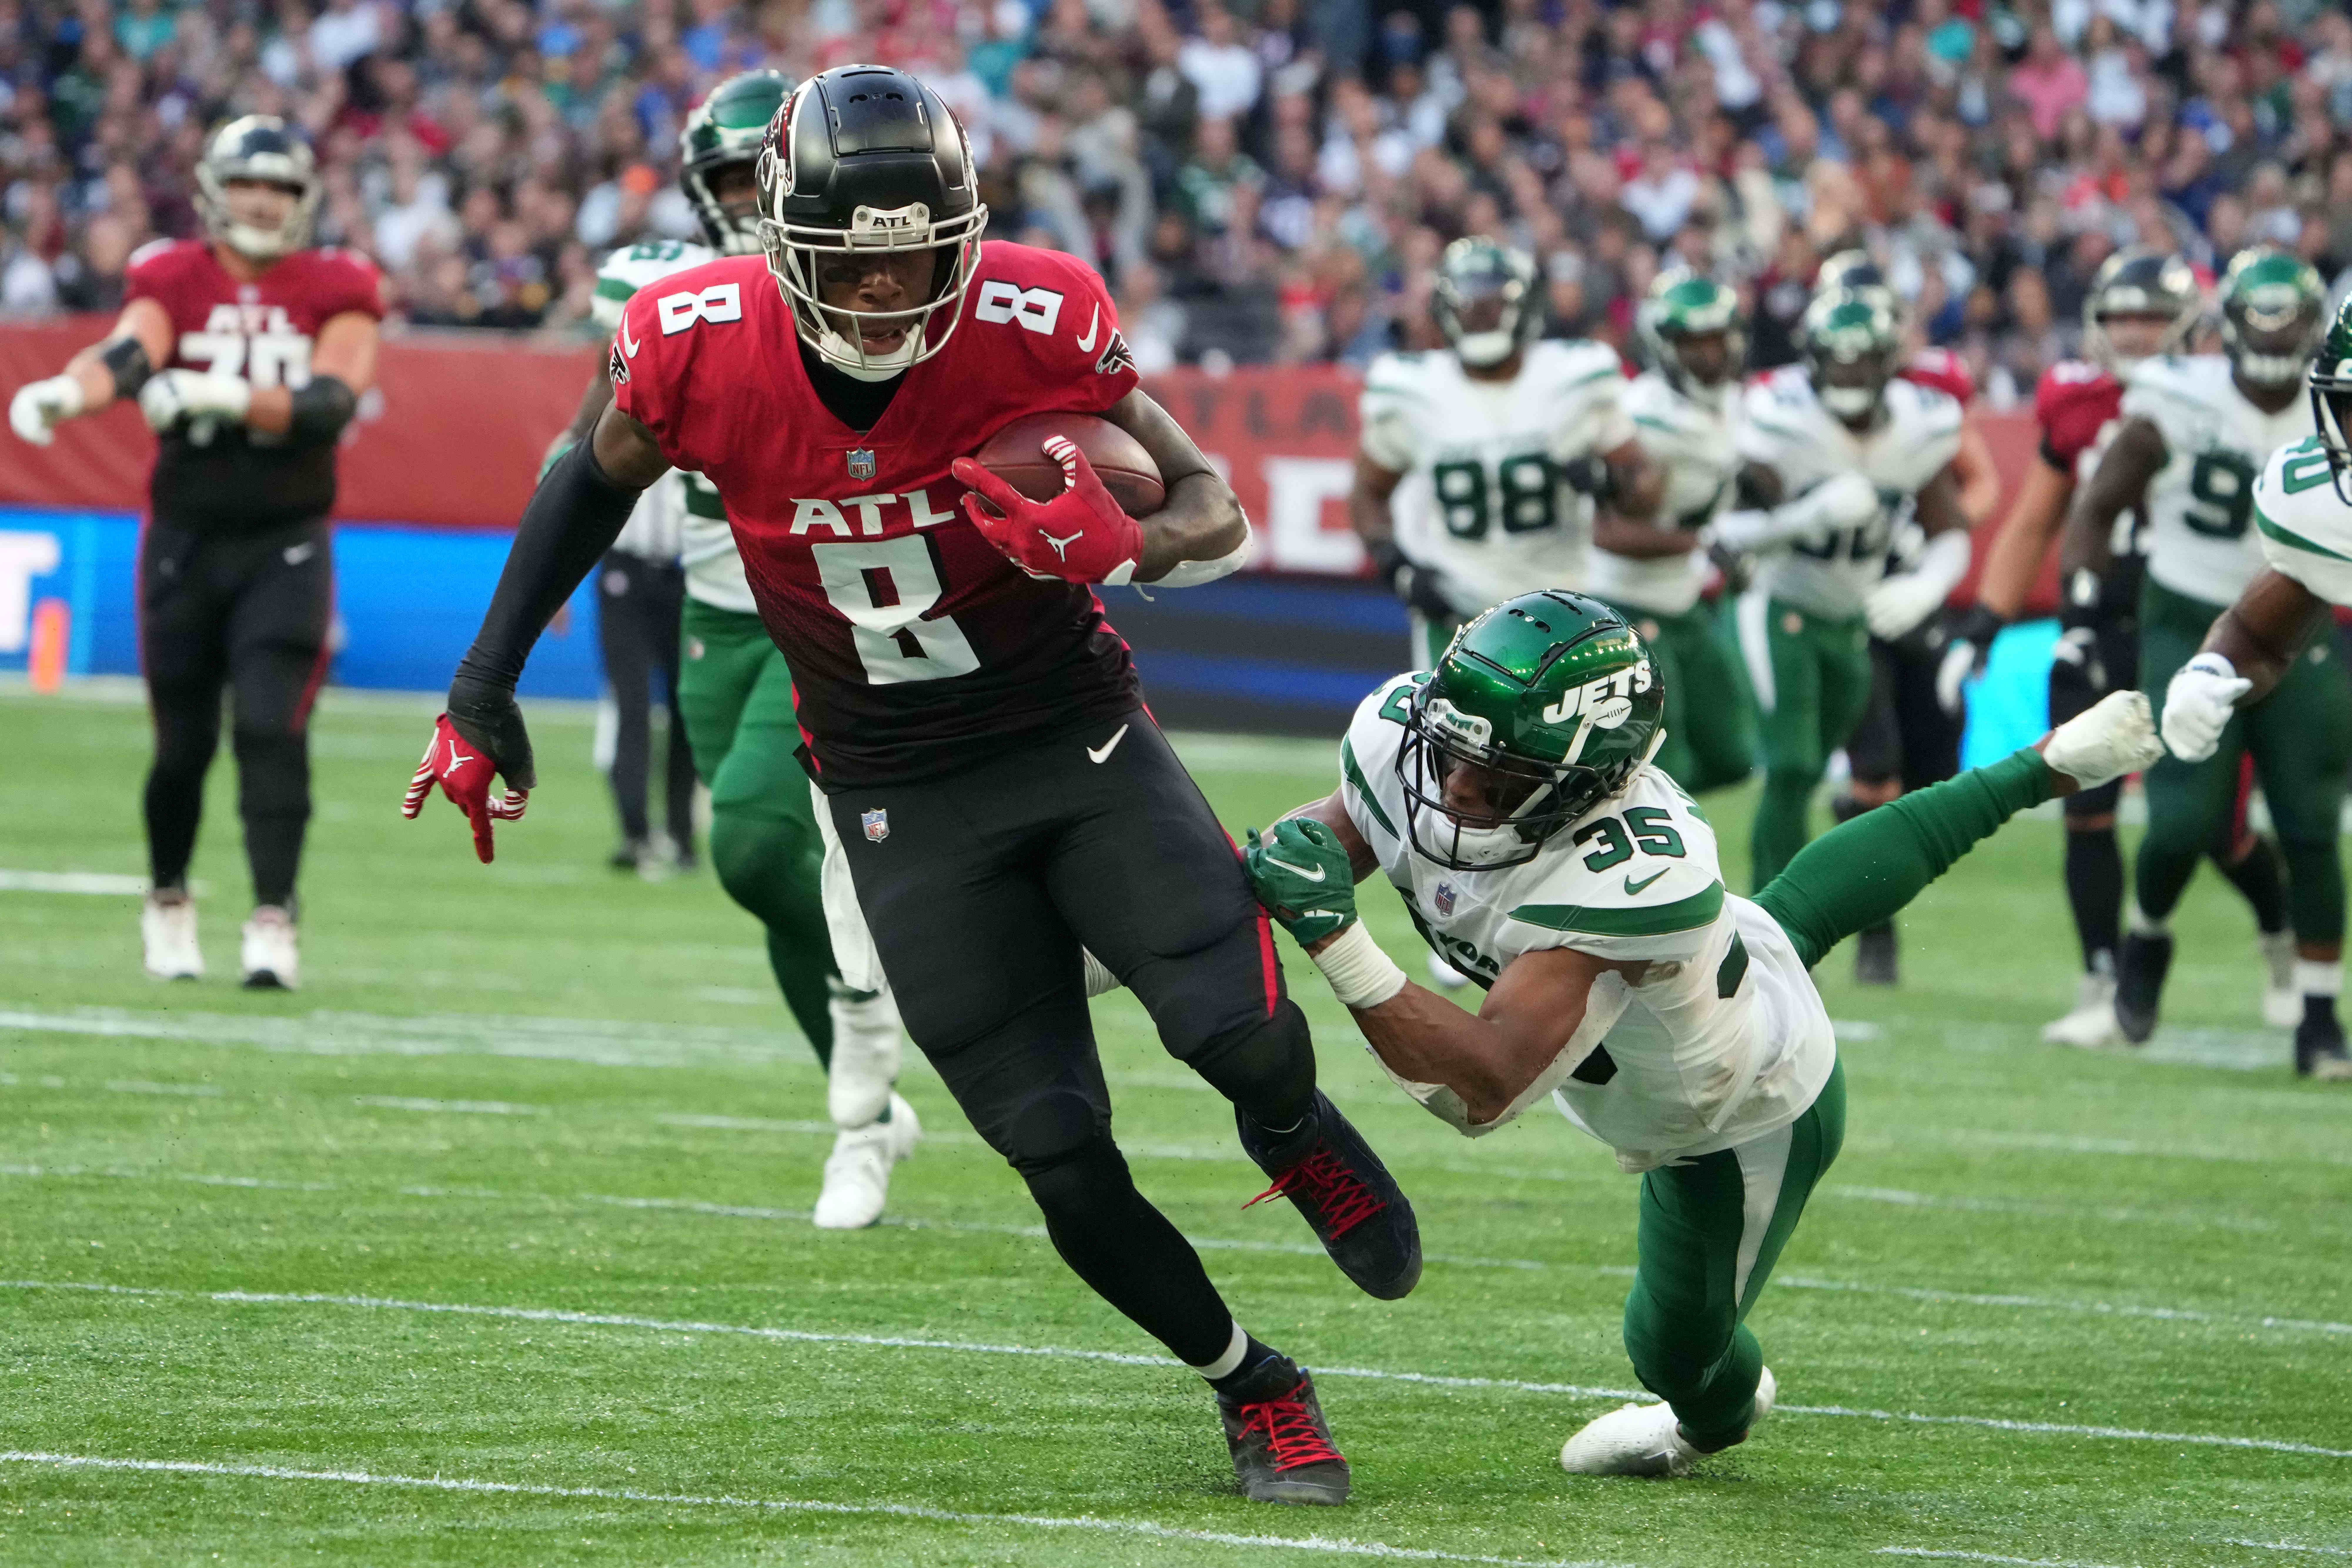 Atlanta Falcons tight end Kyle Pitts (8) is defended by New York Jets defensive back Sharrod Neasman (35) in the second half during an NFL International Series aame at Tottenham Hotspur Stadium. The Falcons defeated the Jets 27-20.